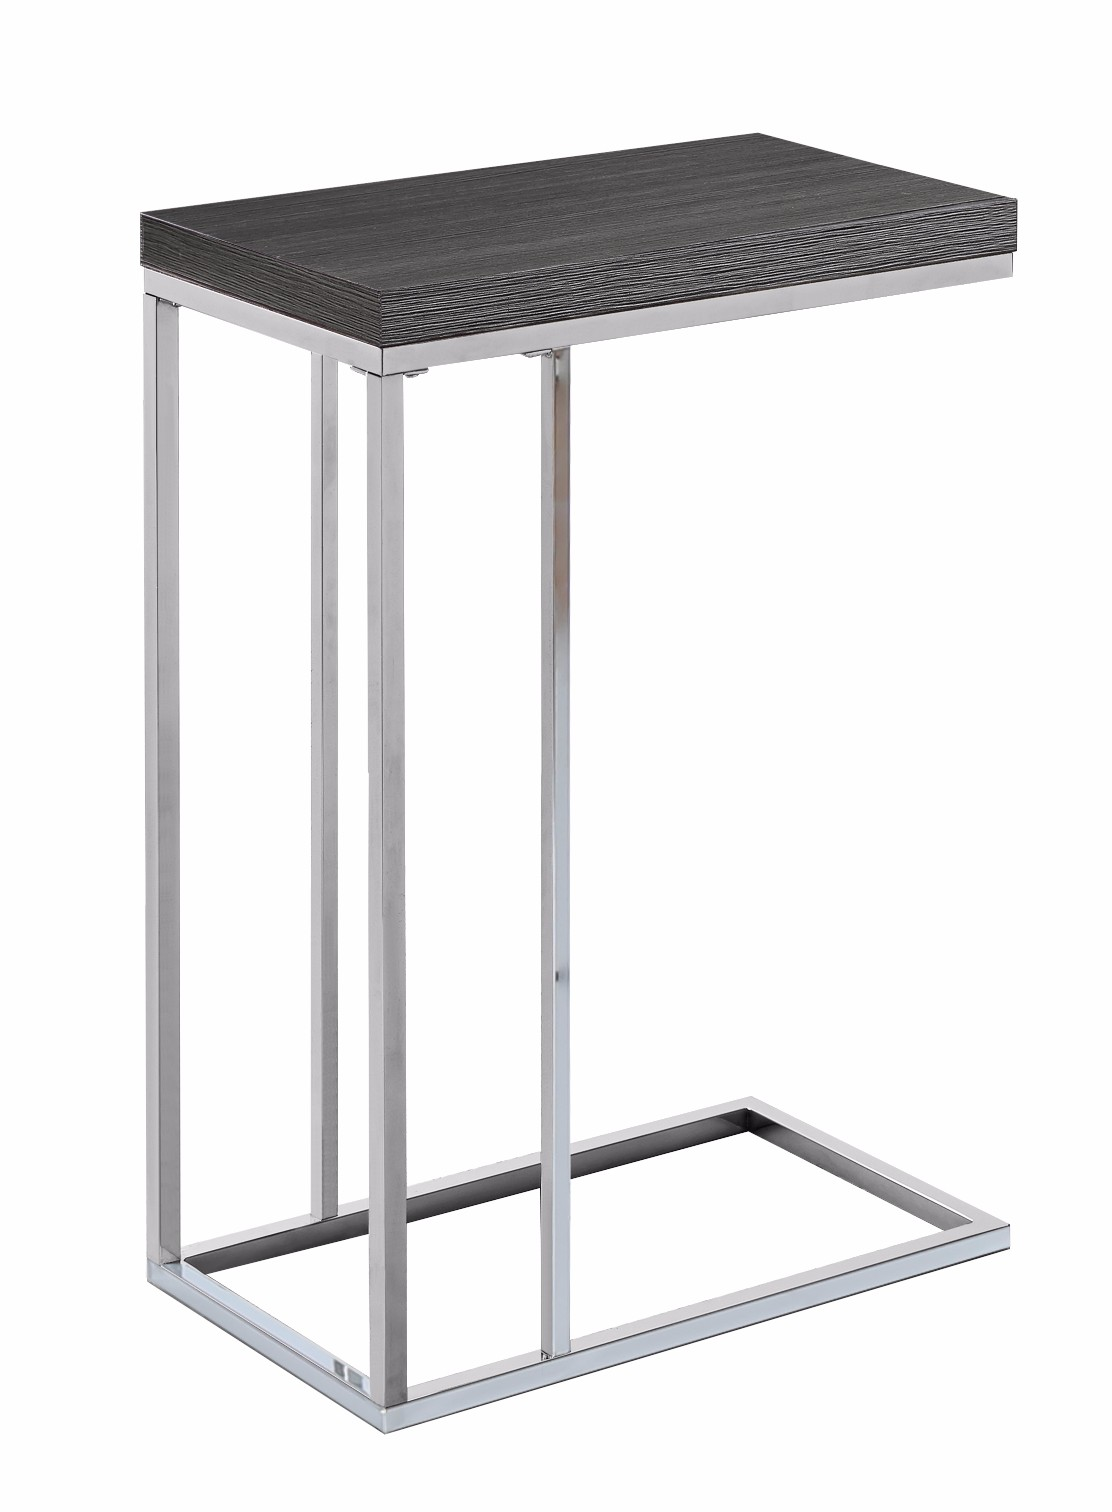 accent table grey chrome metal monarch specialty small diy large coffee cherry wood dining room furniture tiffany blue console lamps white sliding barn door extra side kitchen